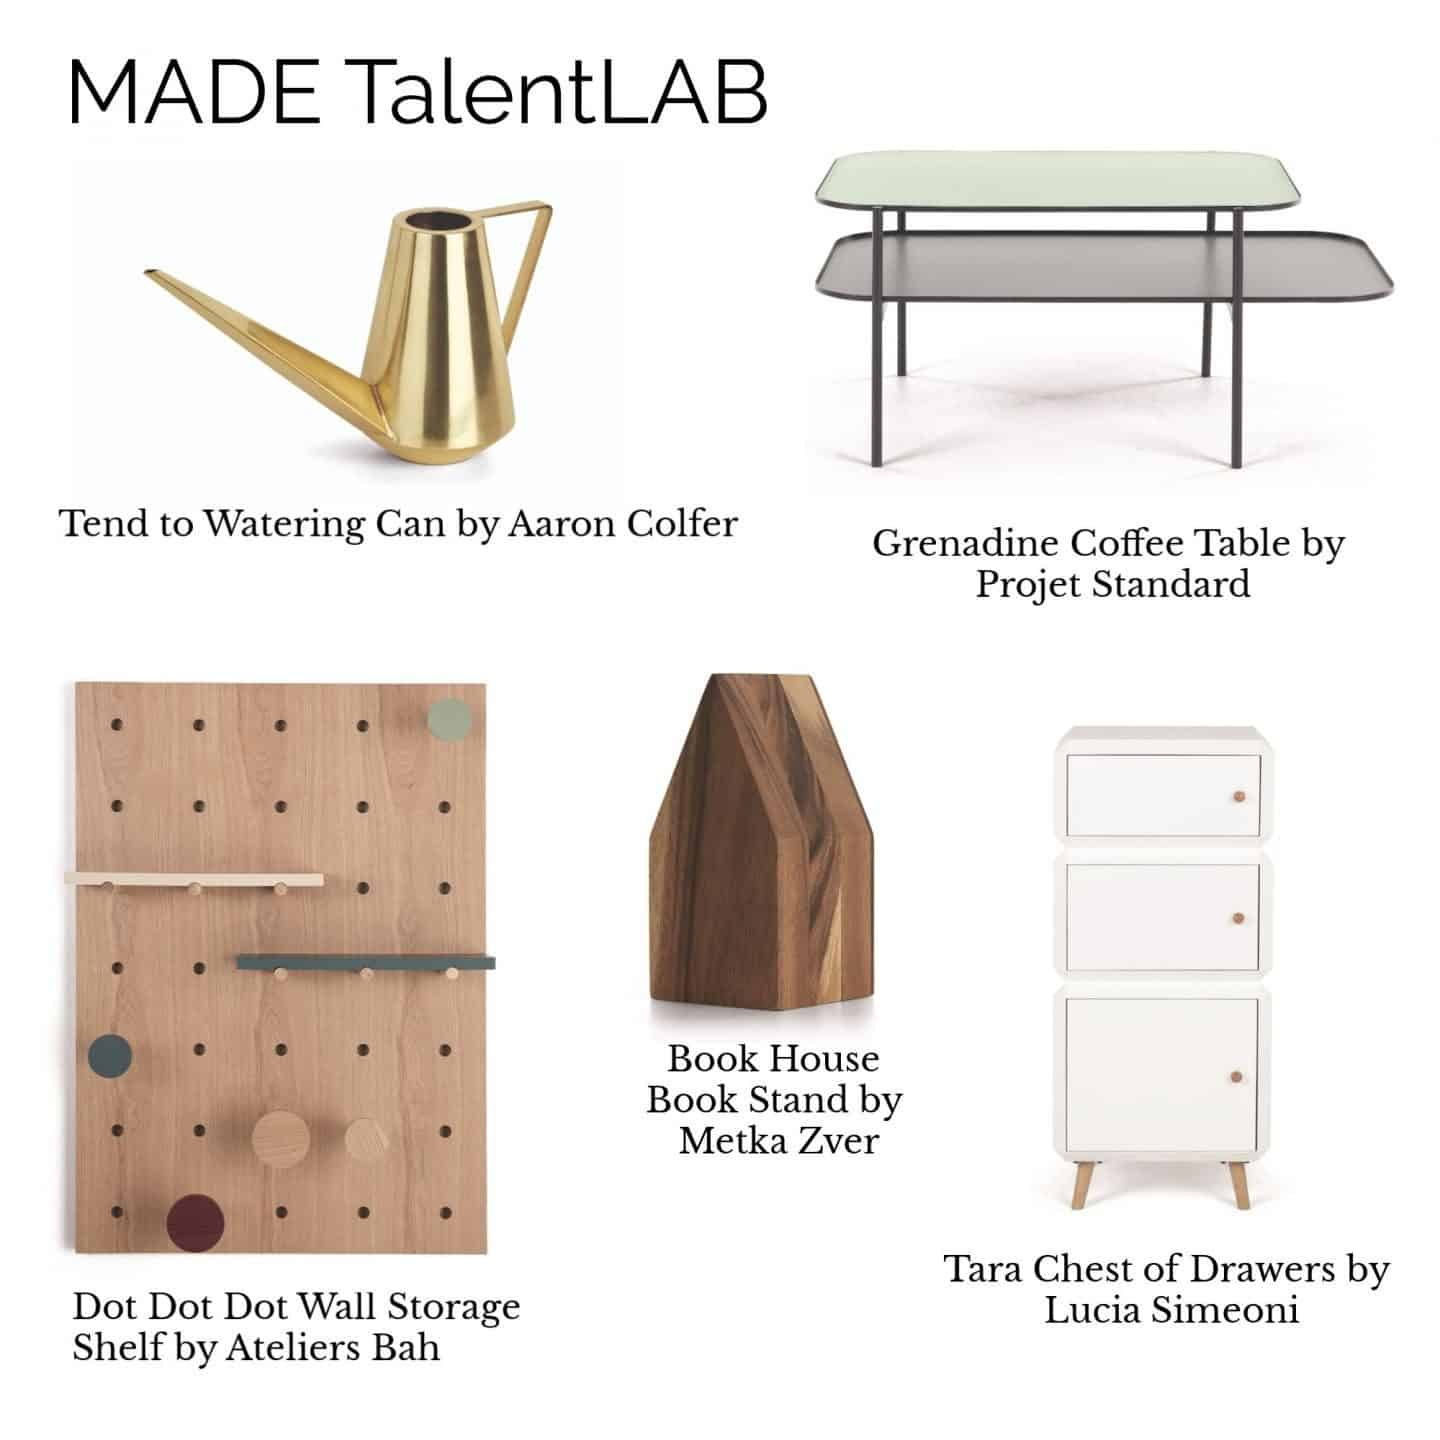 A collage of products from the MADE.COM TalentLAB Collection 2 featuring furniture, storage and accessories